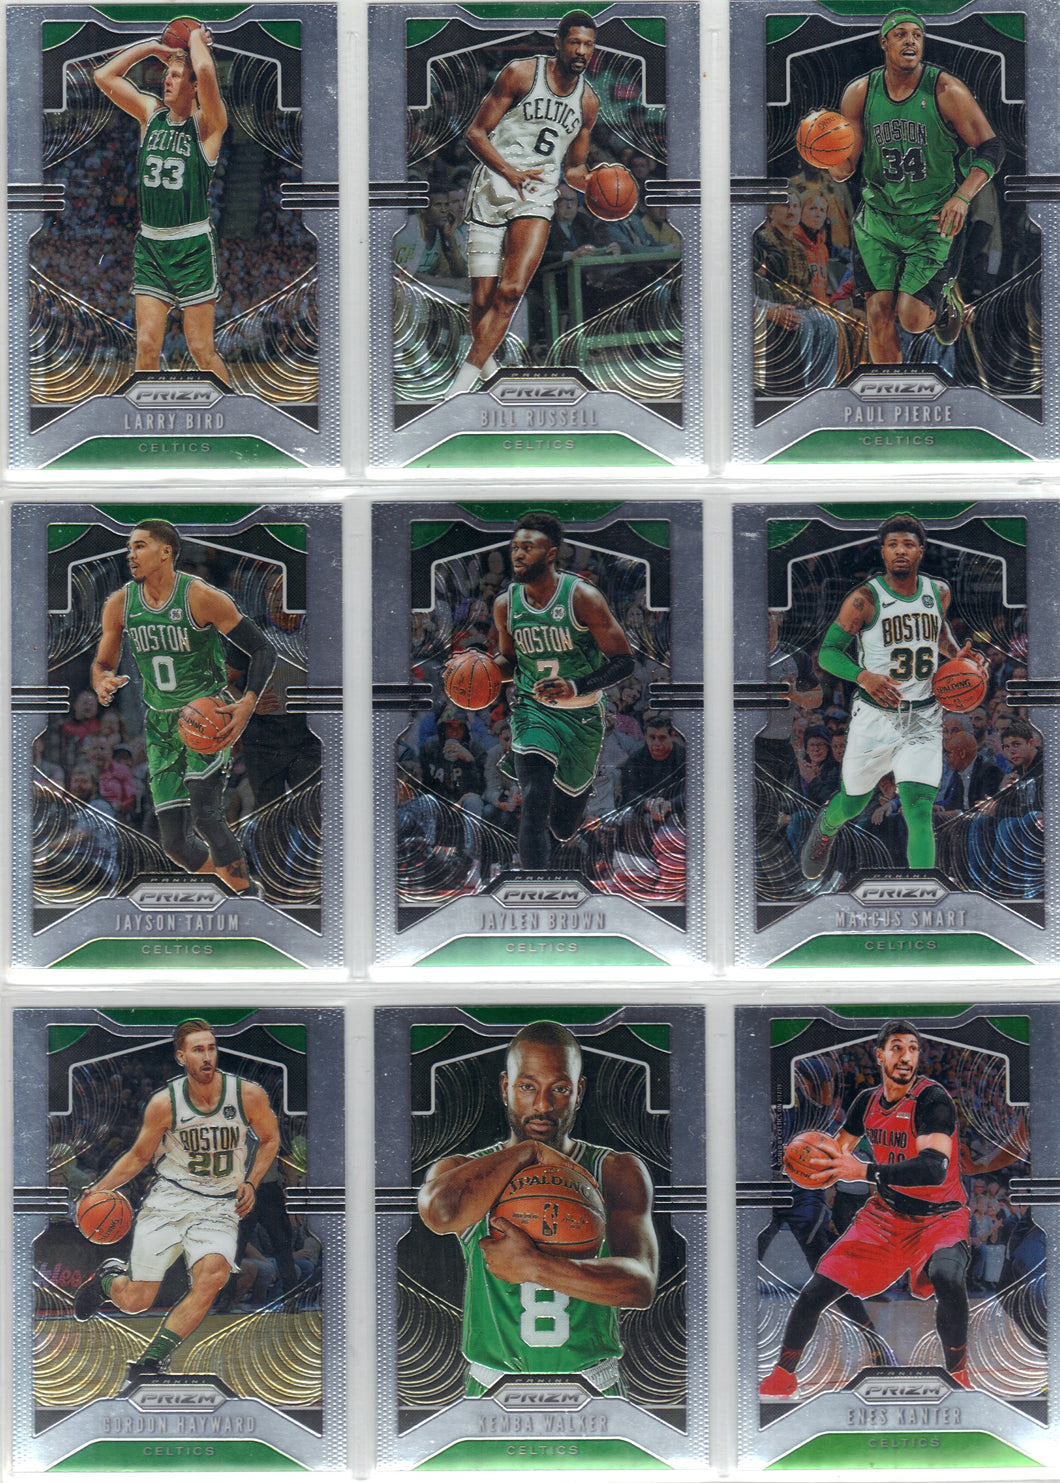 2019-20 Prizm Boston Celtics NBA Basketball Cards Team Set